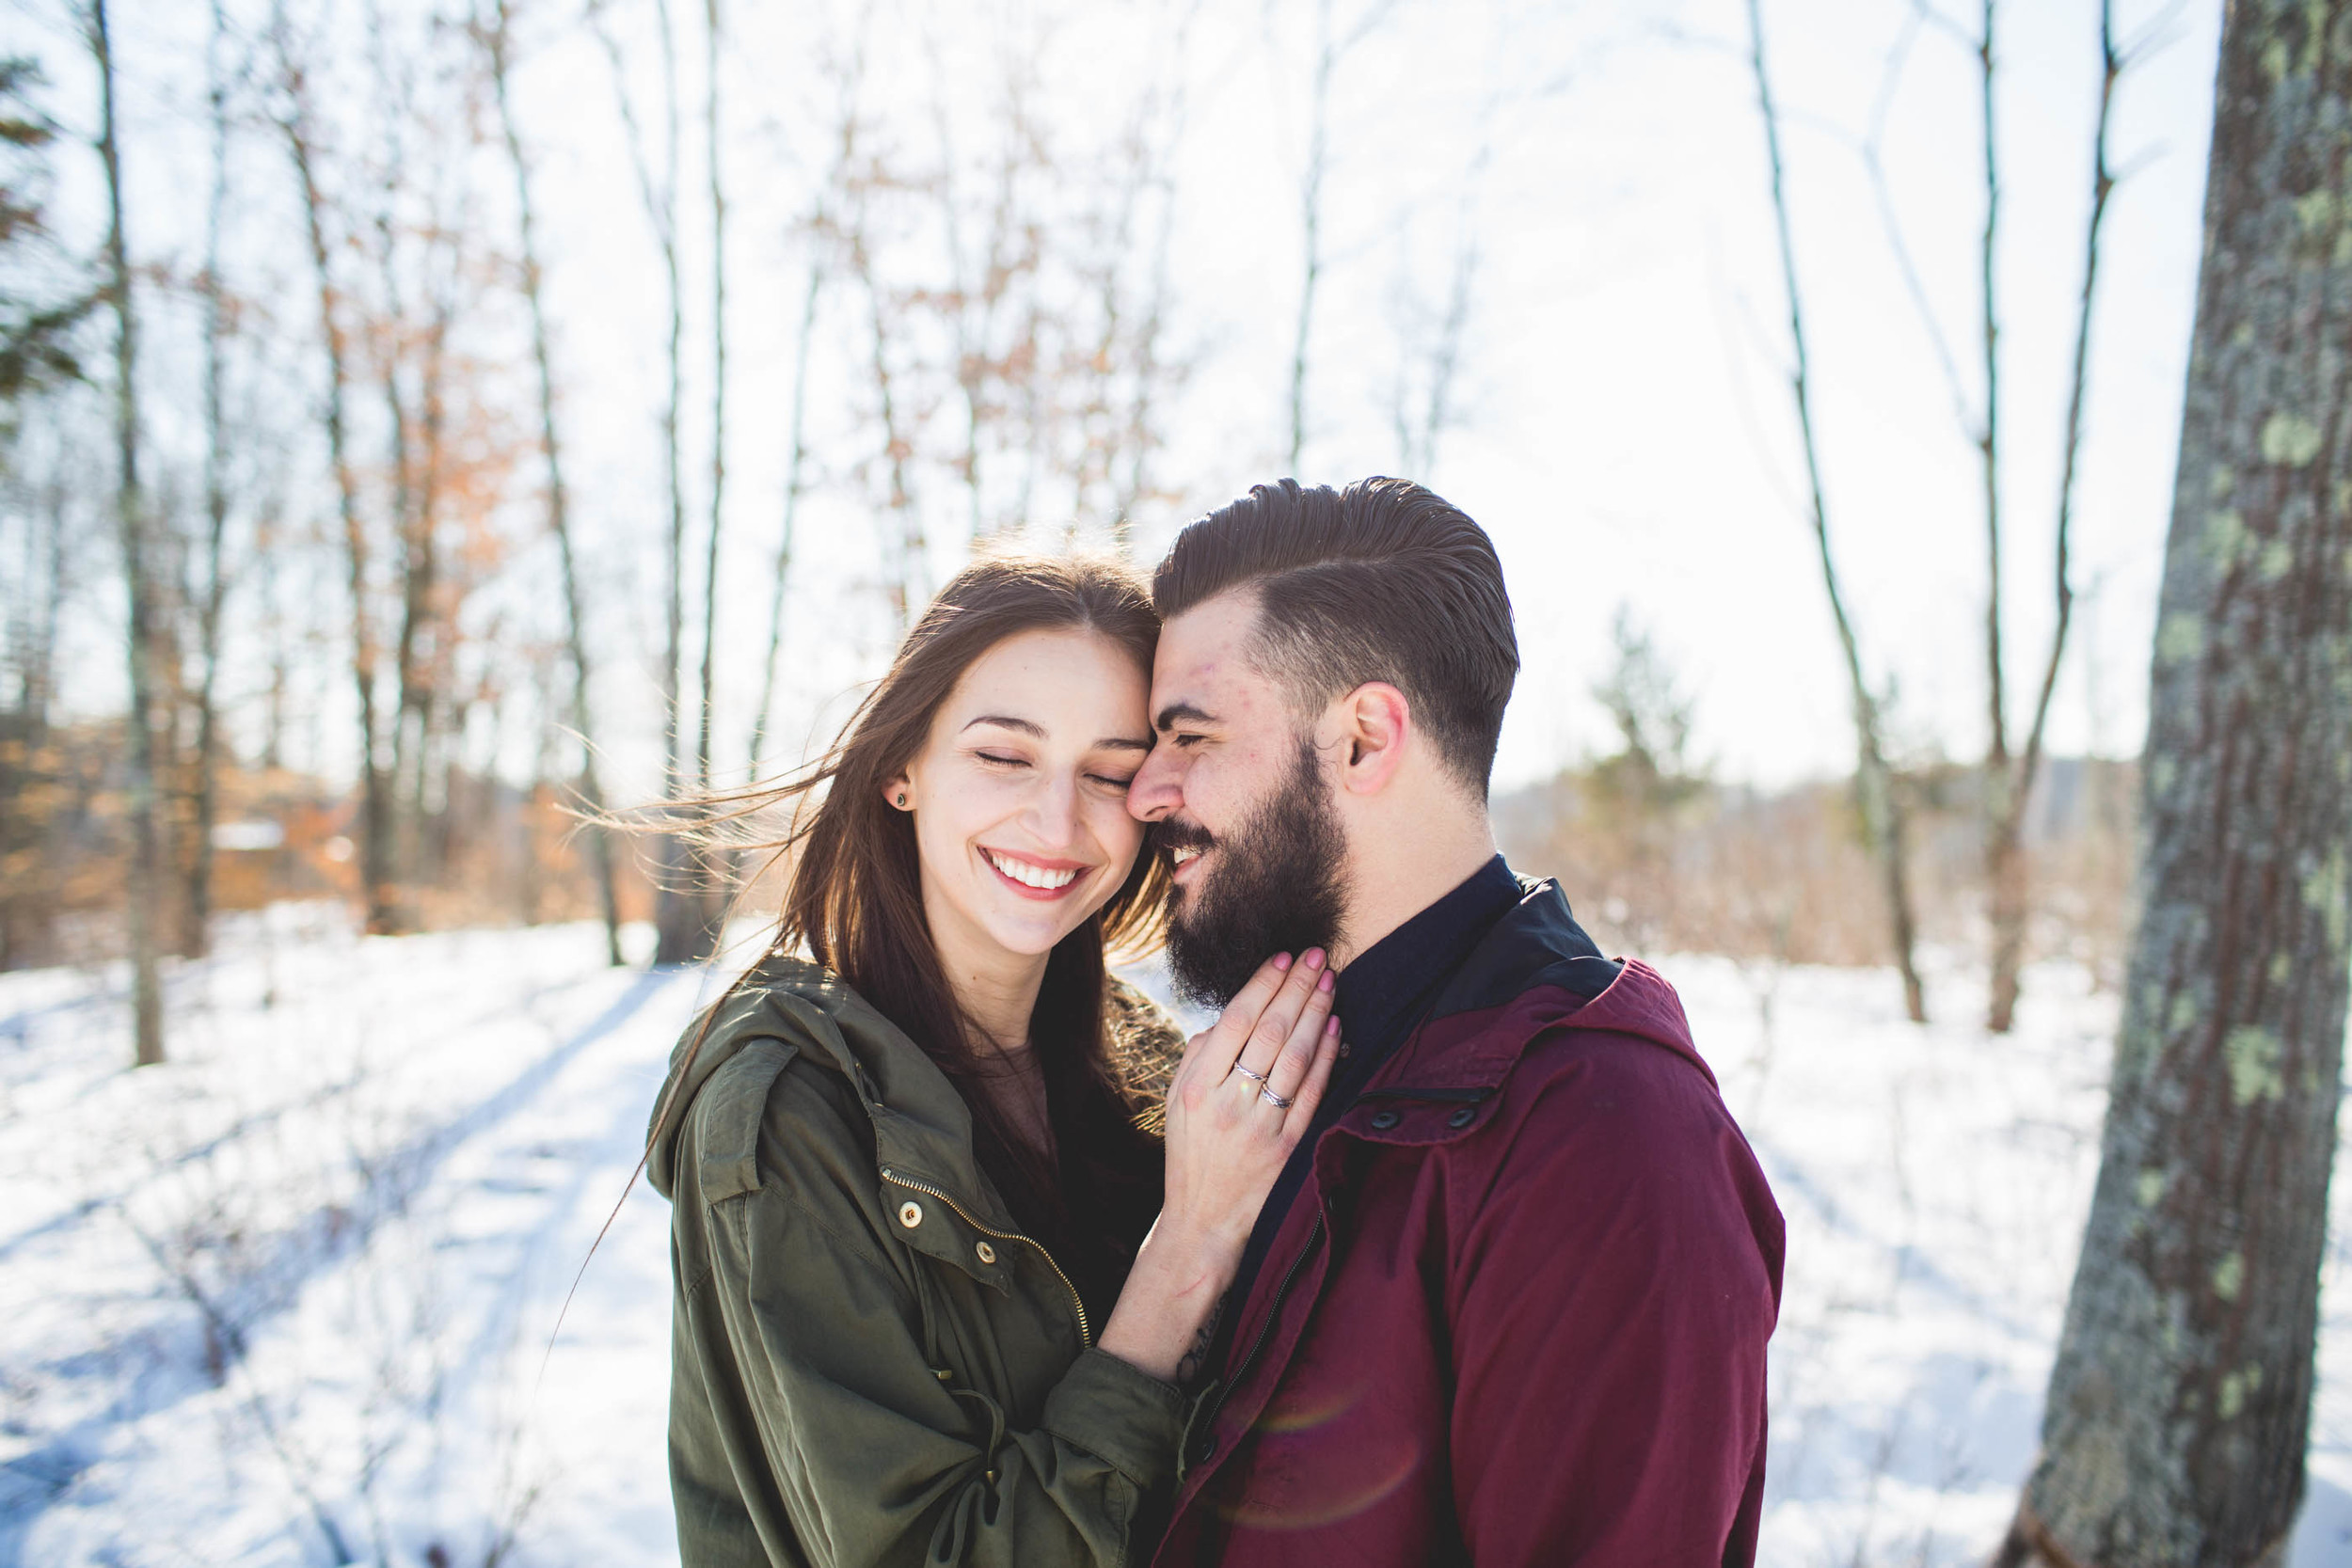 Winter-Engagement-Photography-6.jpg